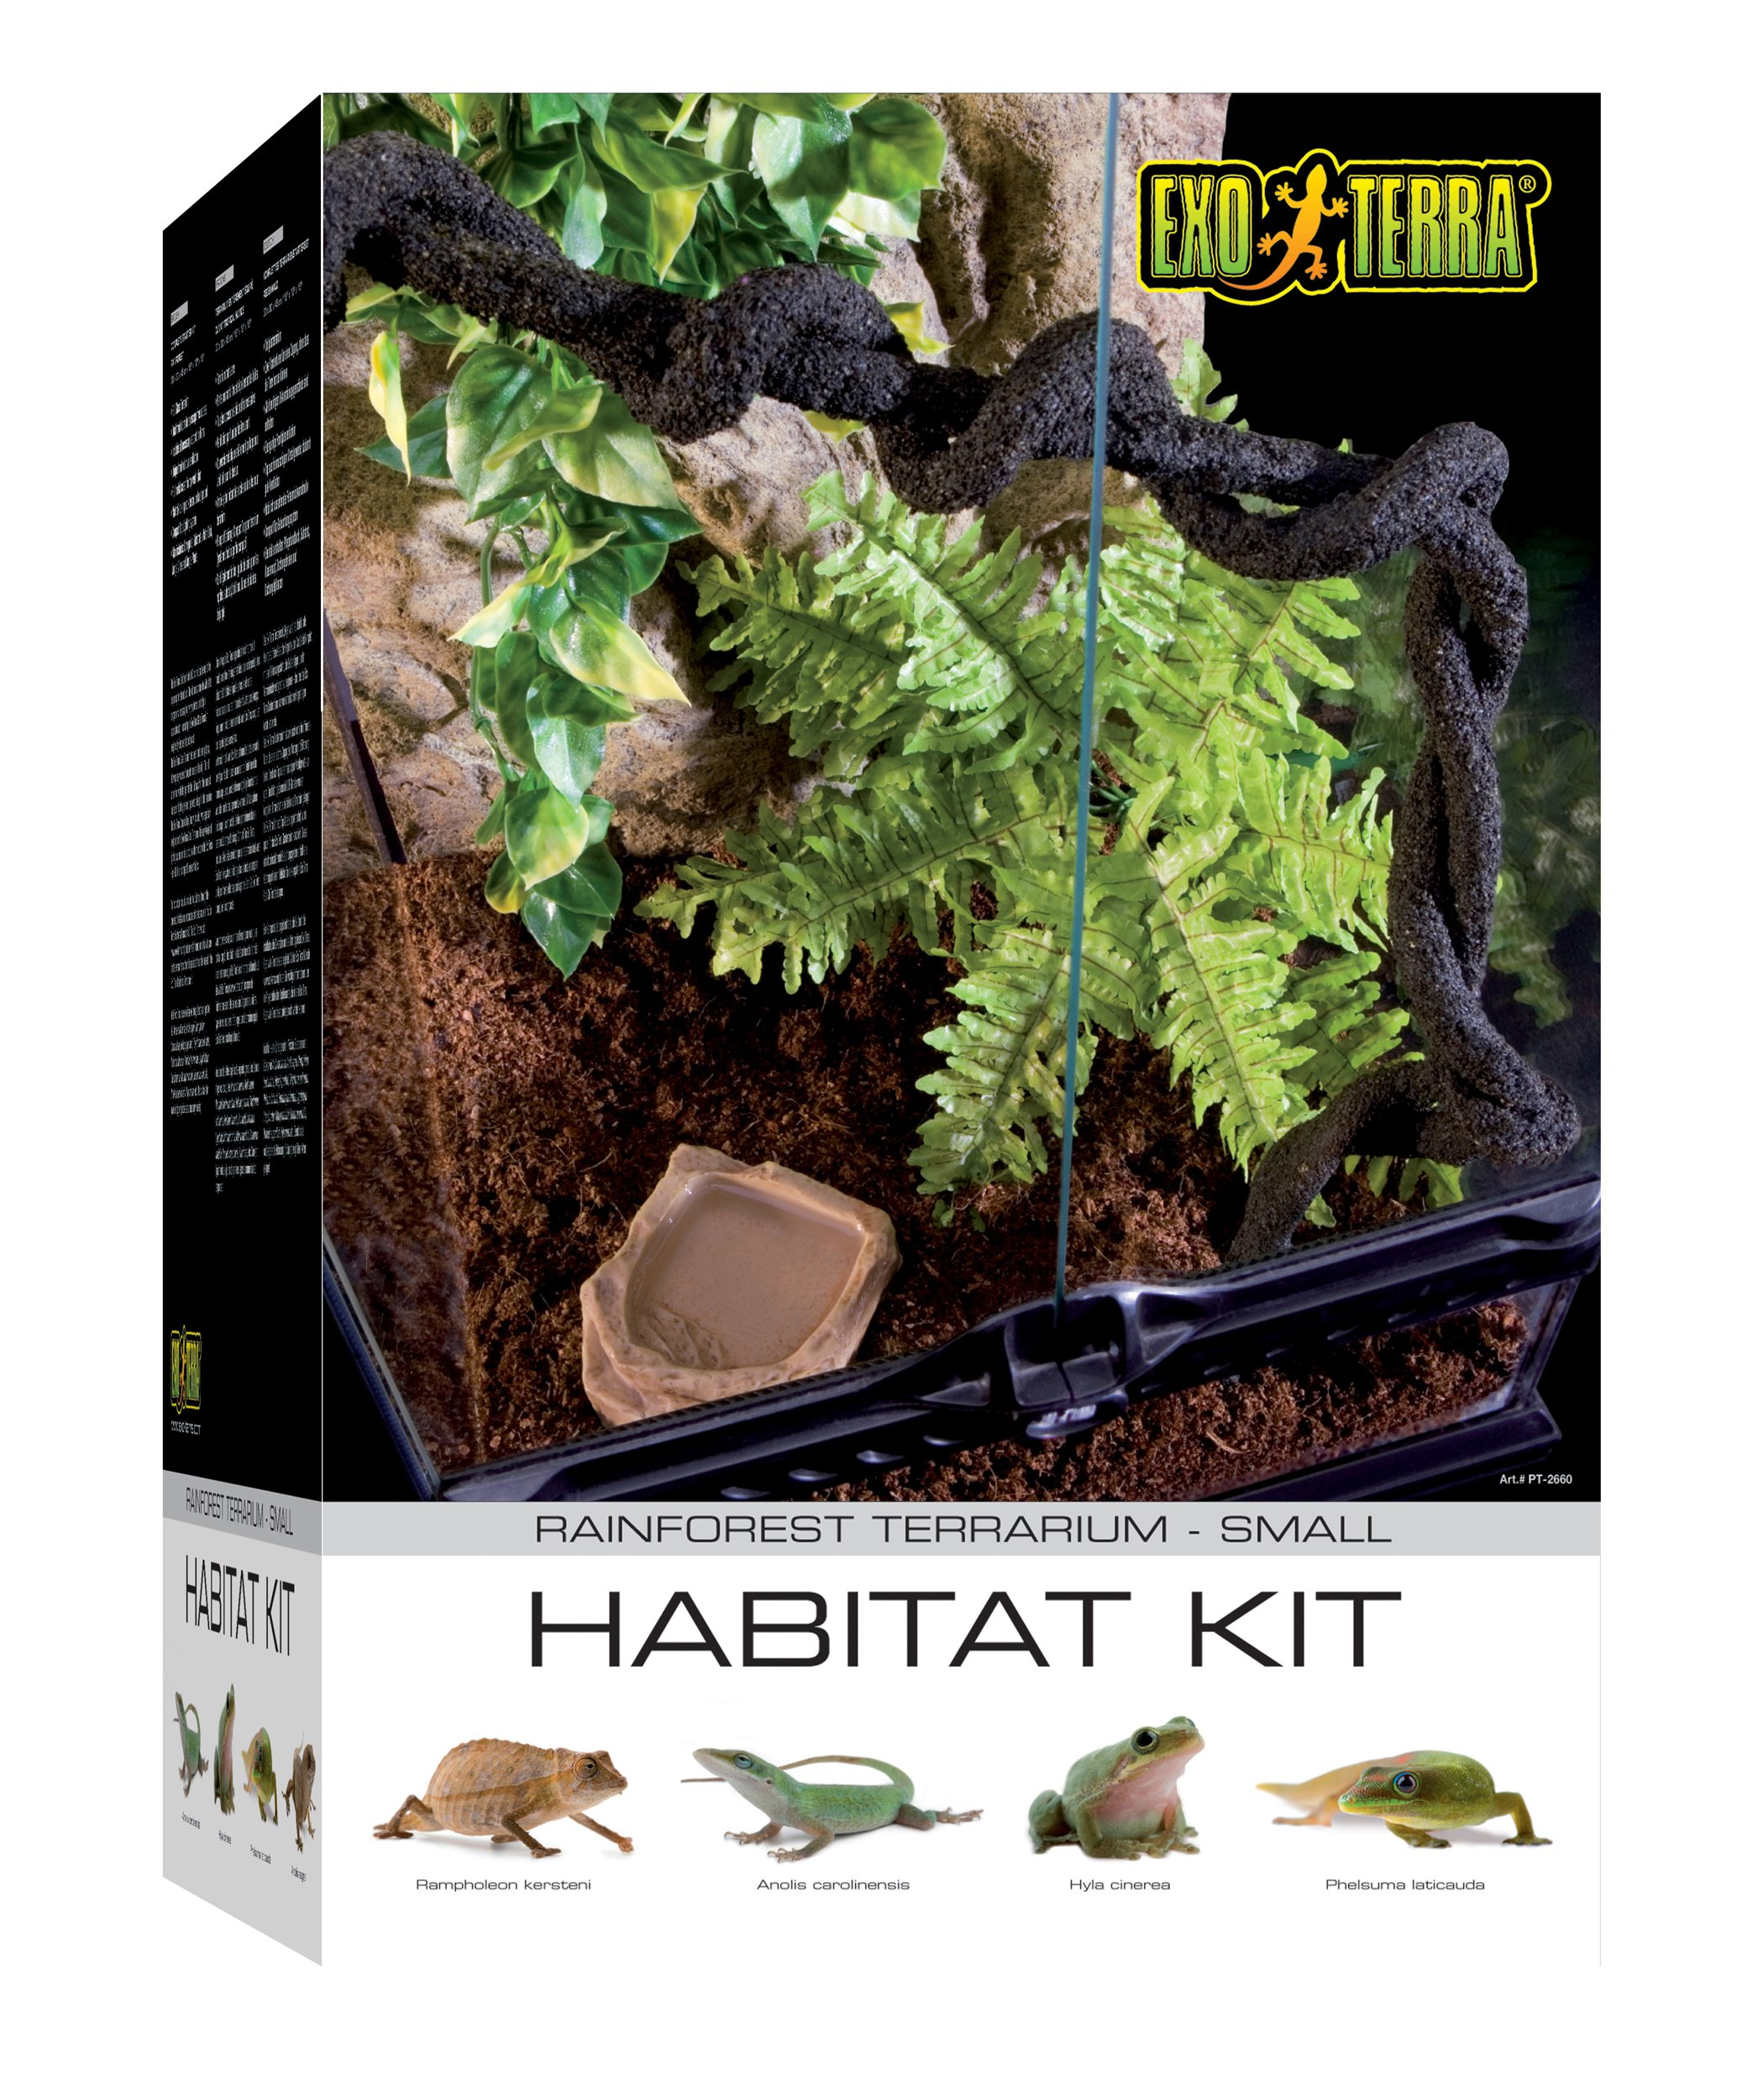 Exo Terra Rainforest Habitat Kit (includes PT2602) - Small by Hagen